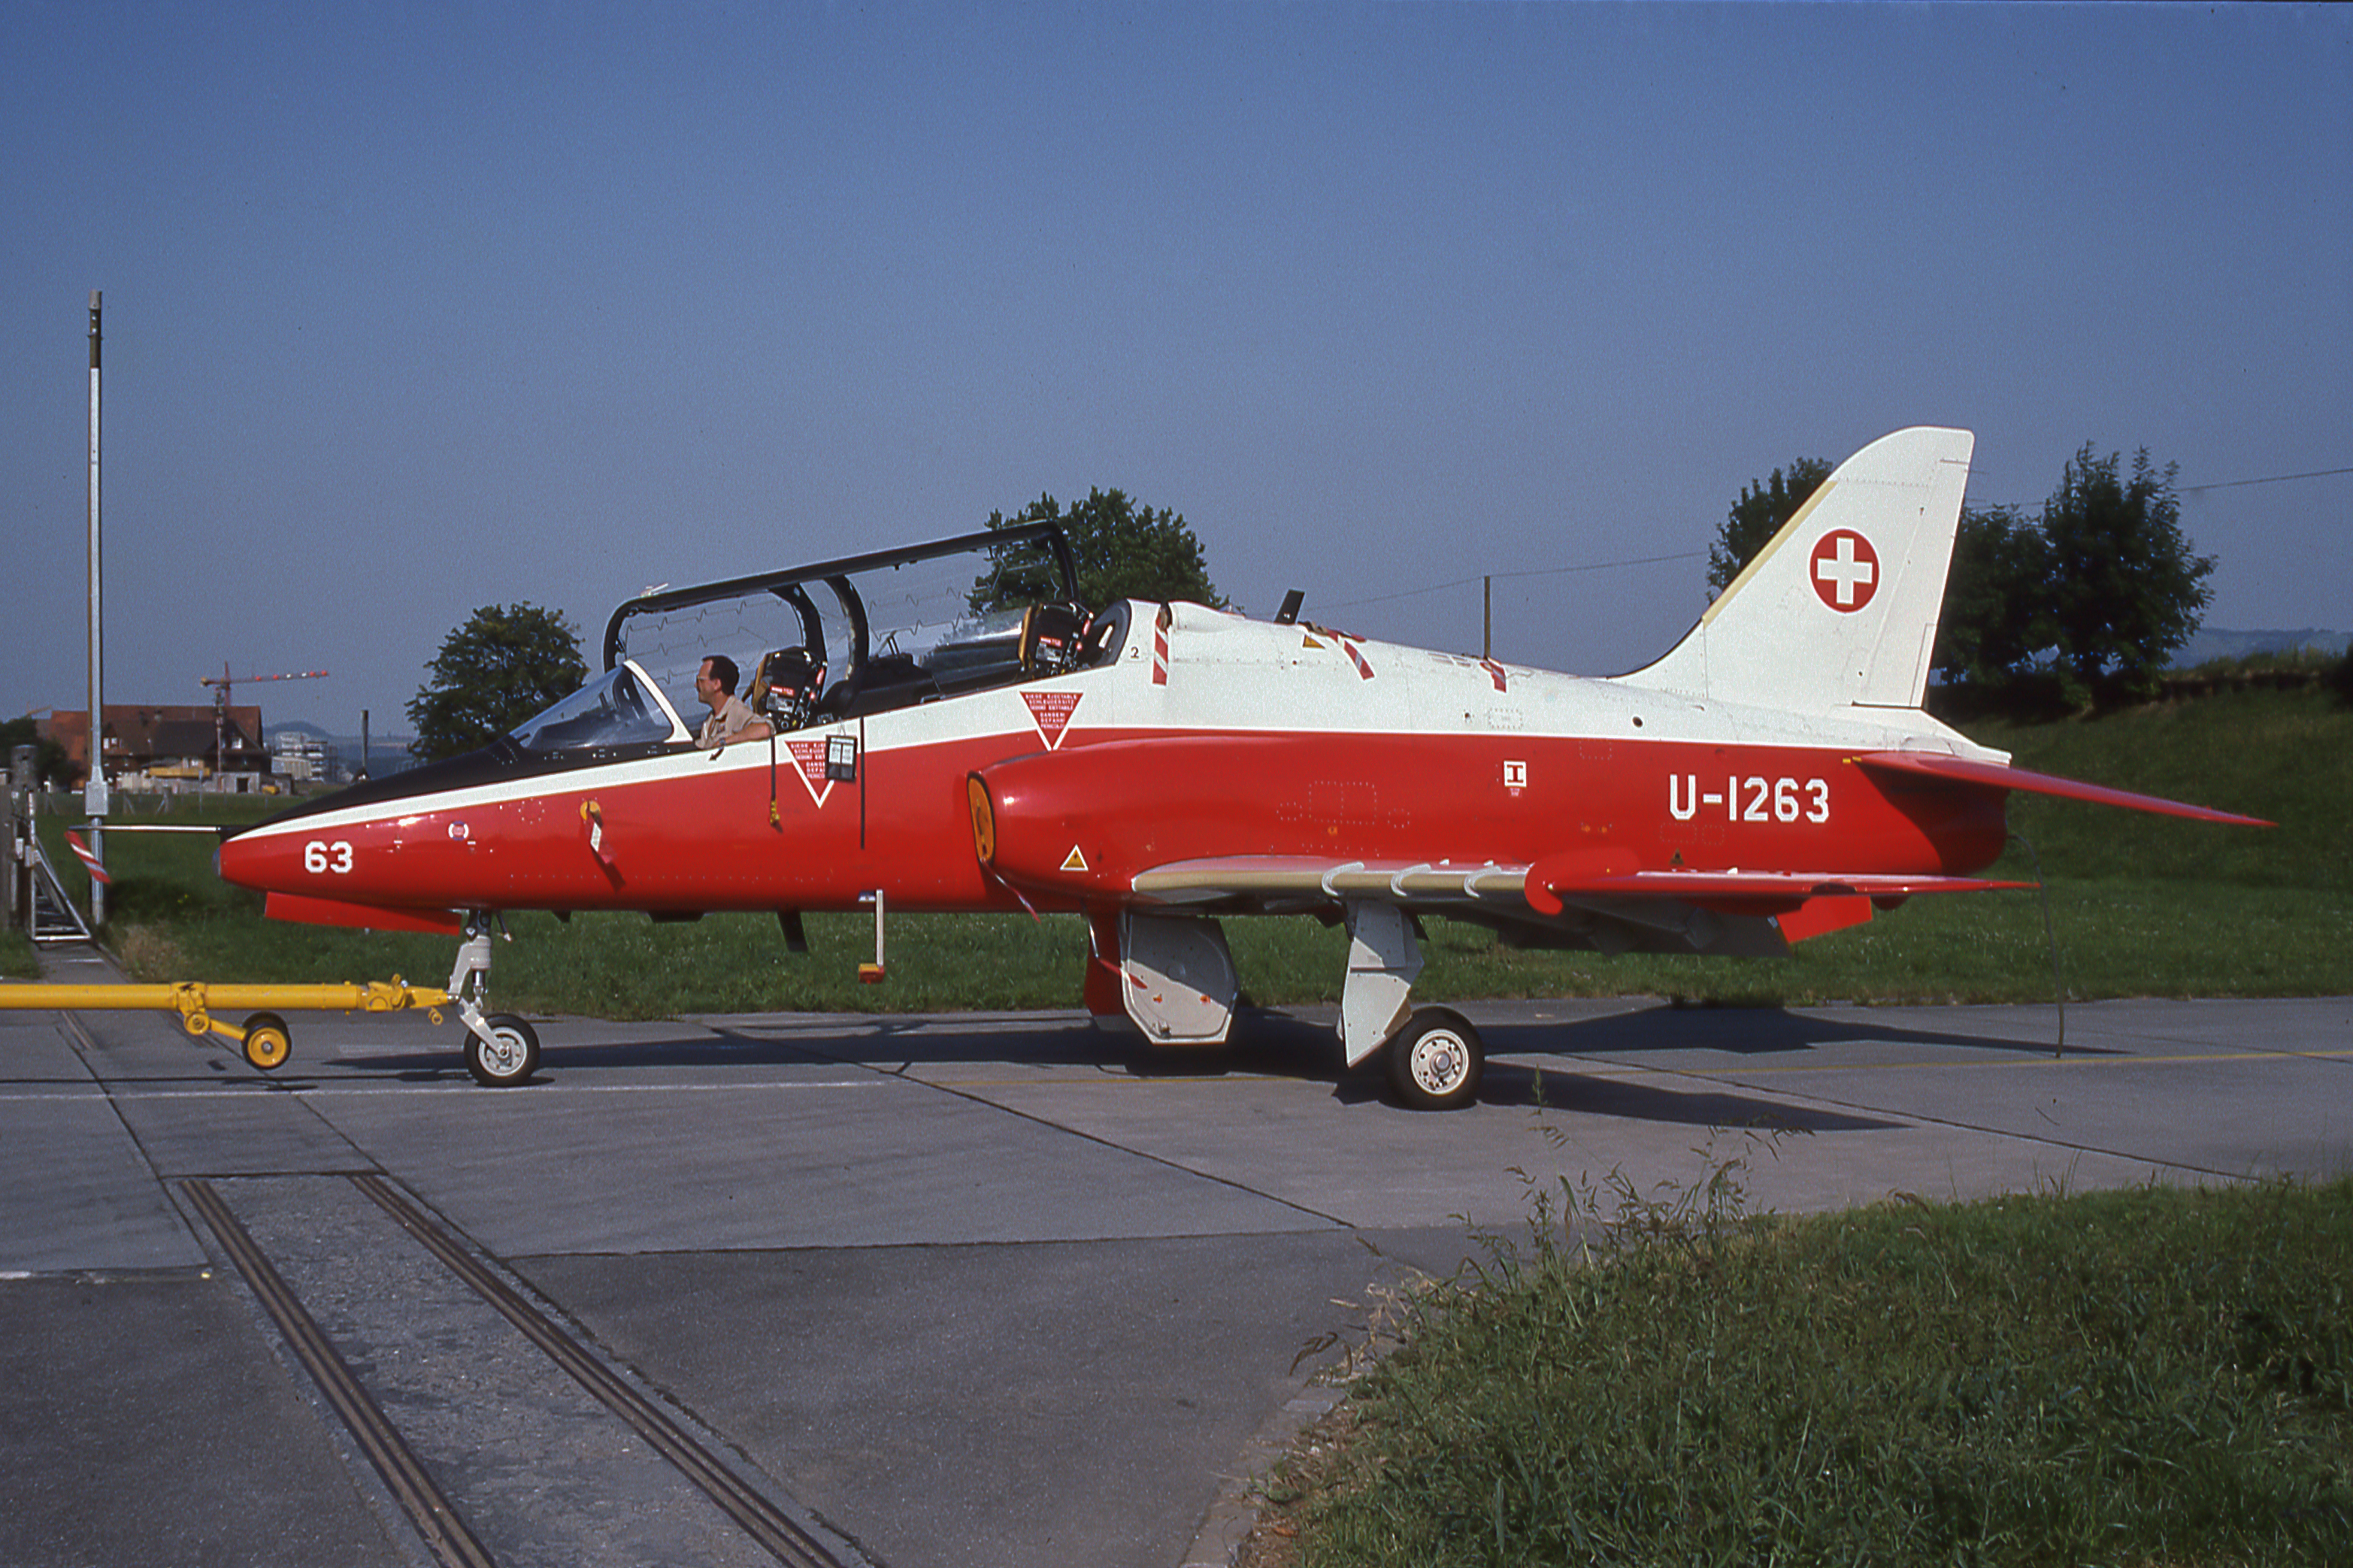 File:Swiss Air Force BAe Hawk trainer U-1263.jpg